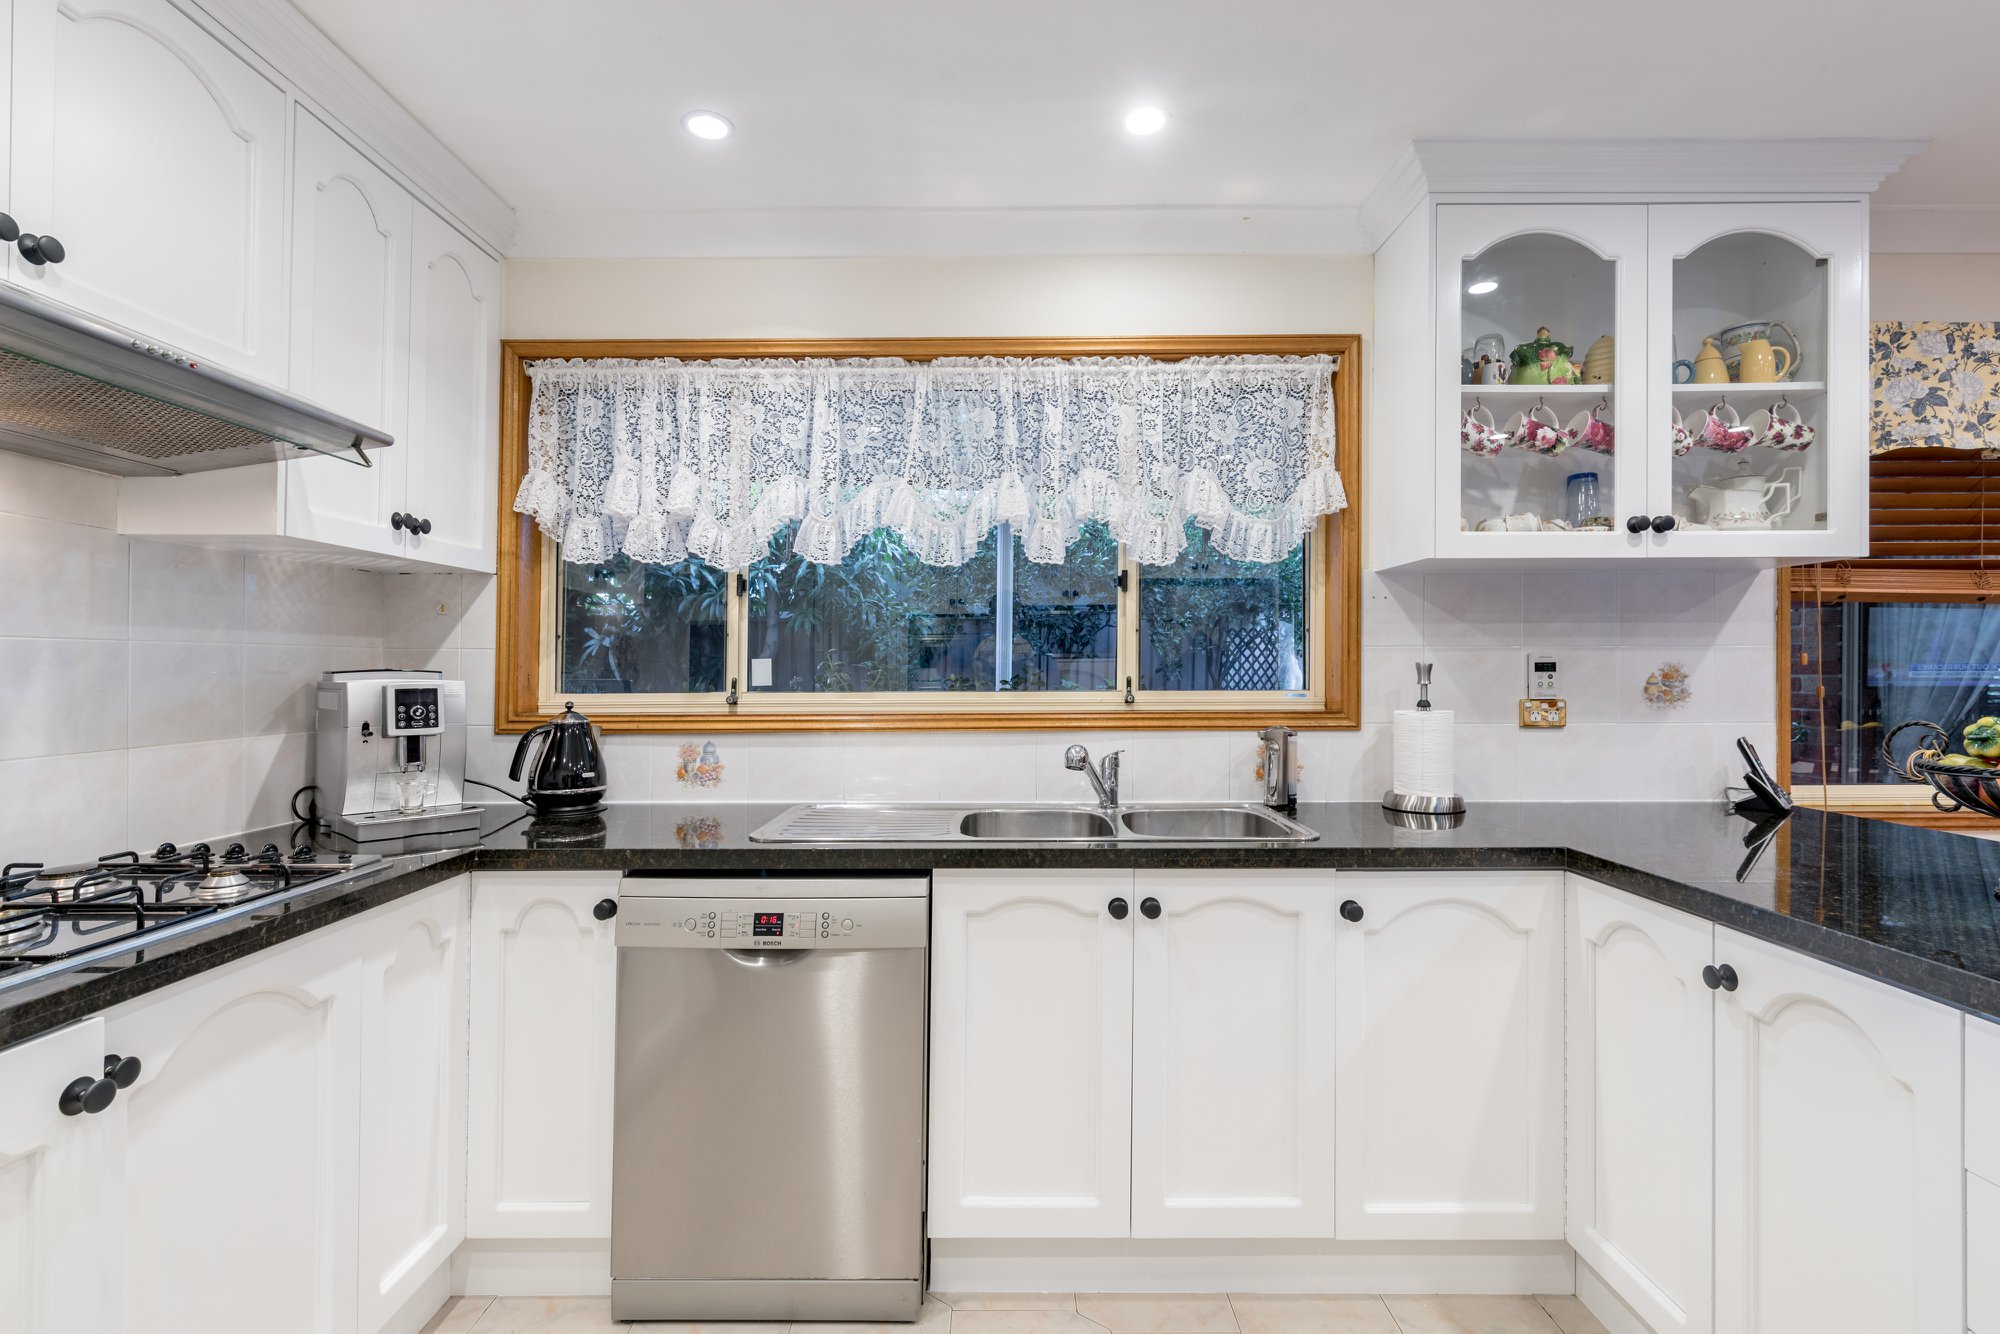 After - Perfect Kitchen Resurfacing